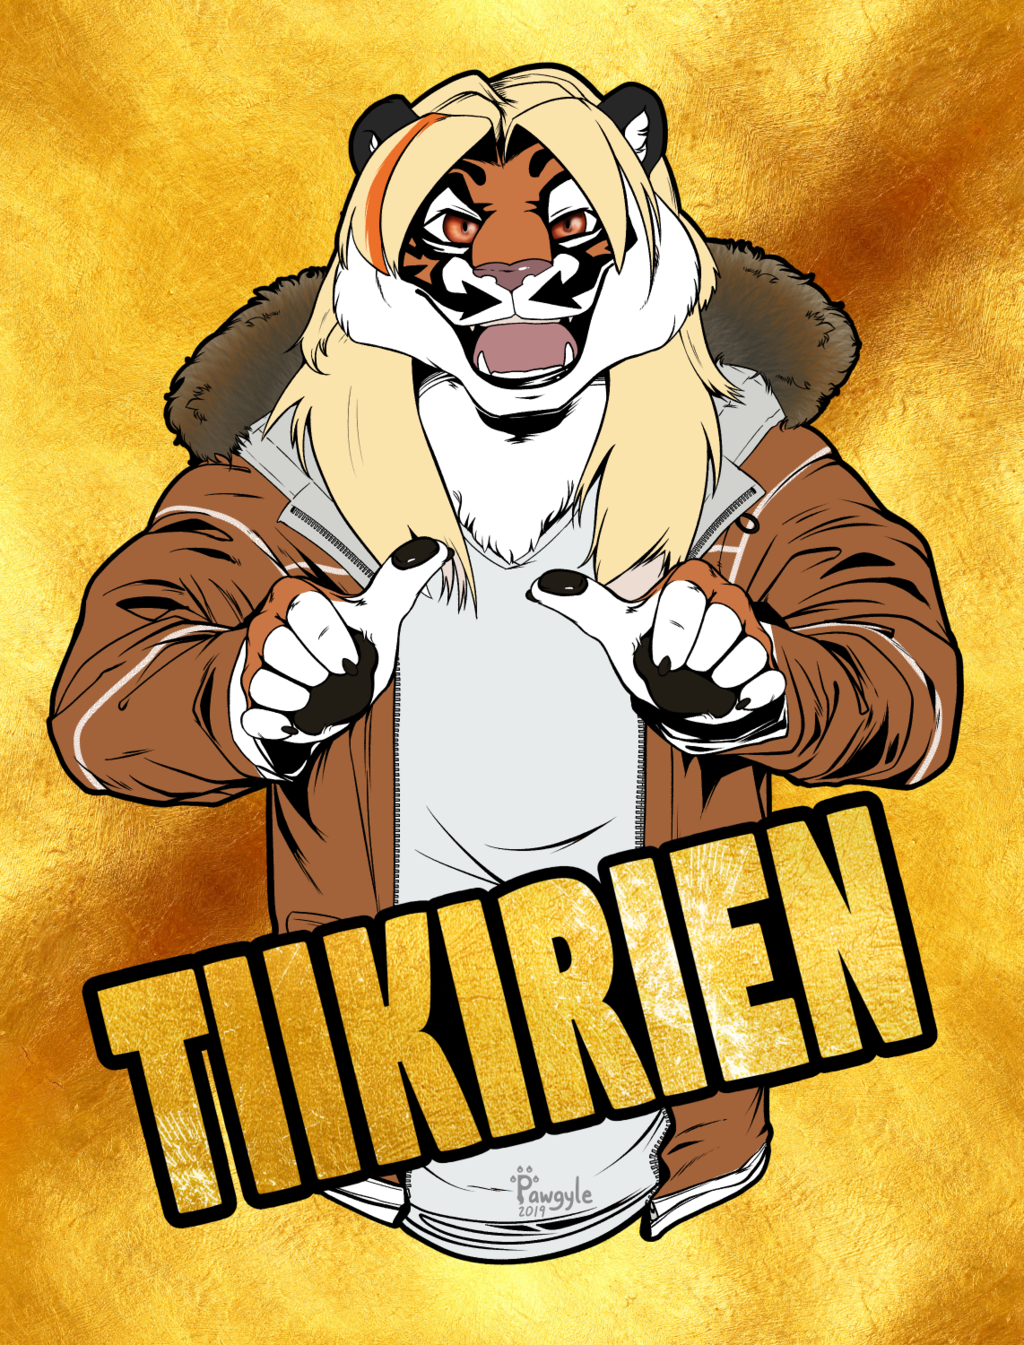 Quilted badge for Tiikirien, Digital version